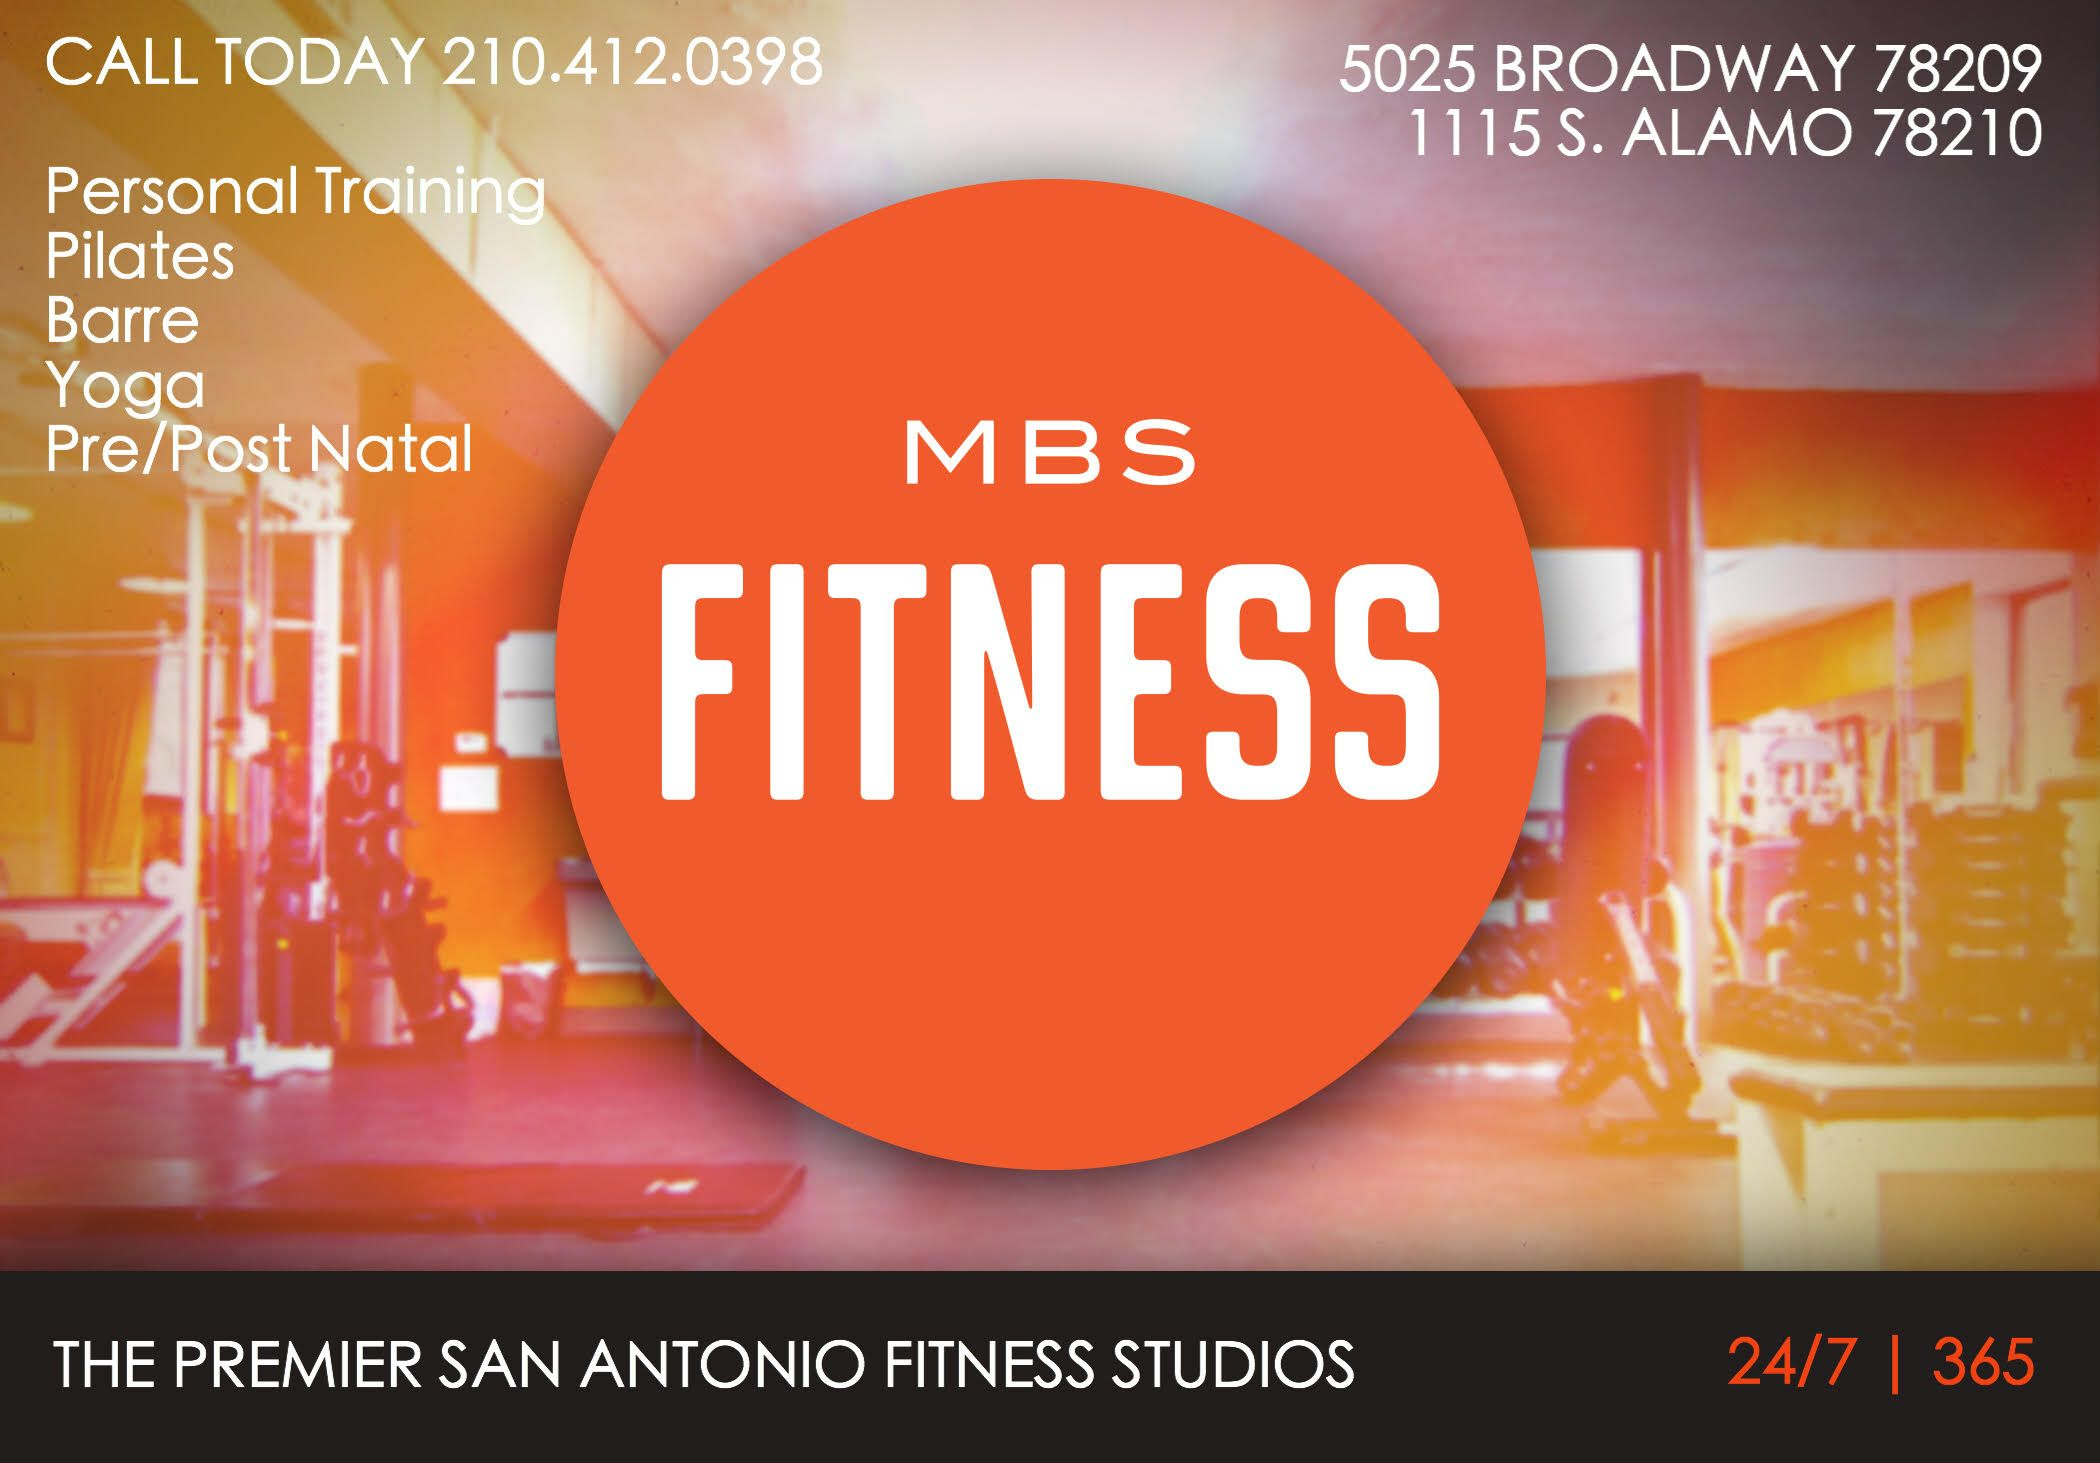 Both of our mbs fitness locations are accessible 24 hours